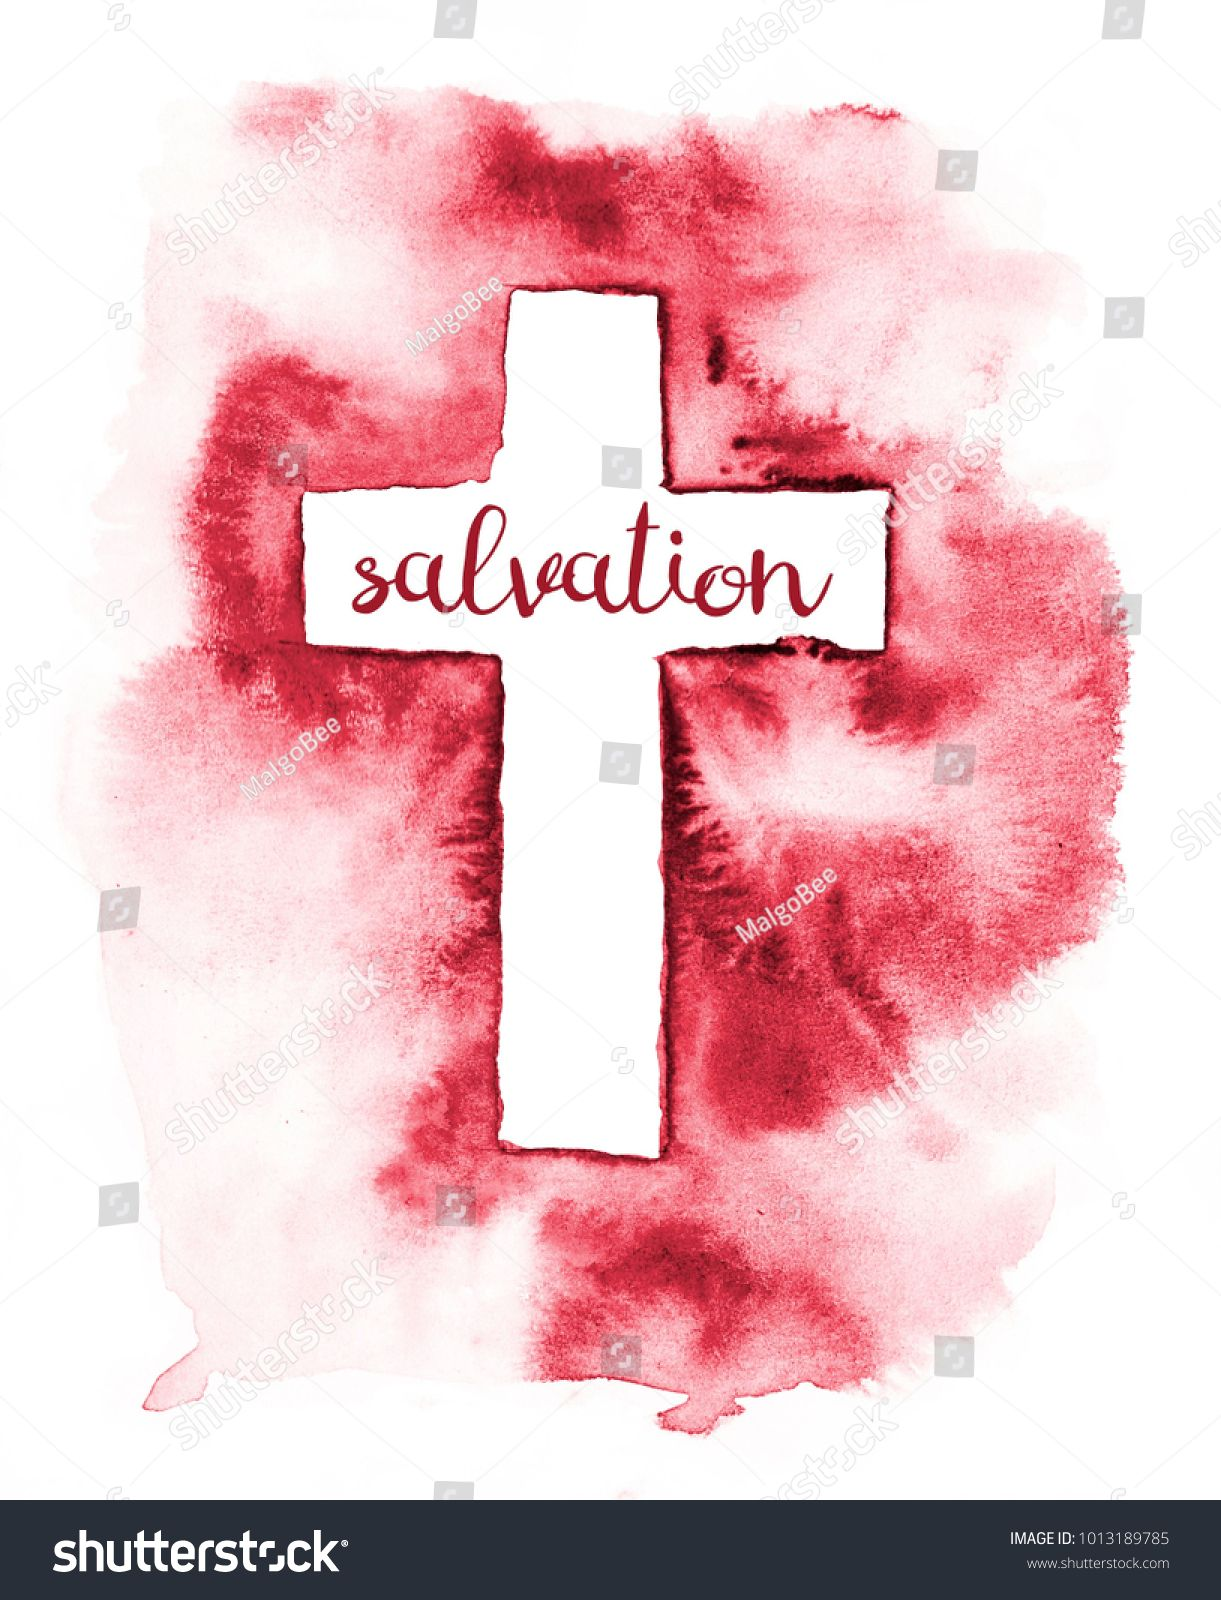 The colorful watercolor illustration of a white cross on red ...